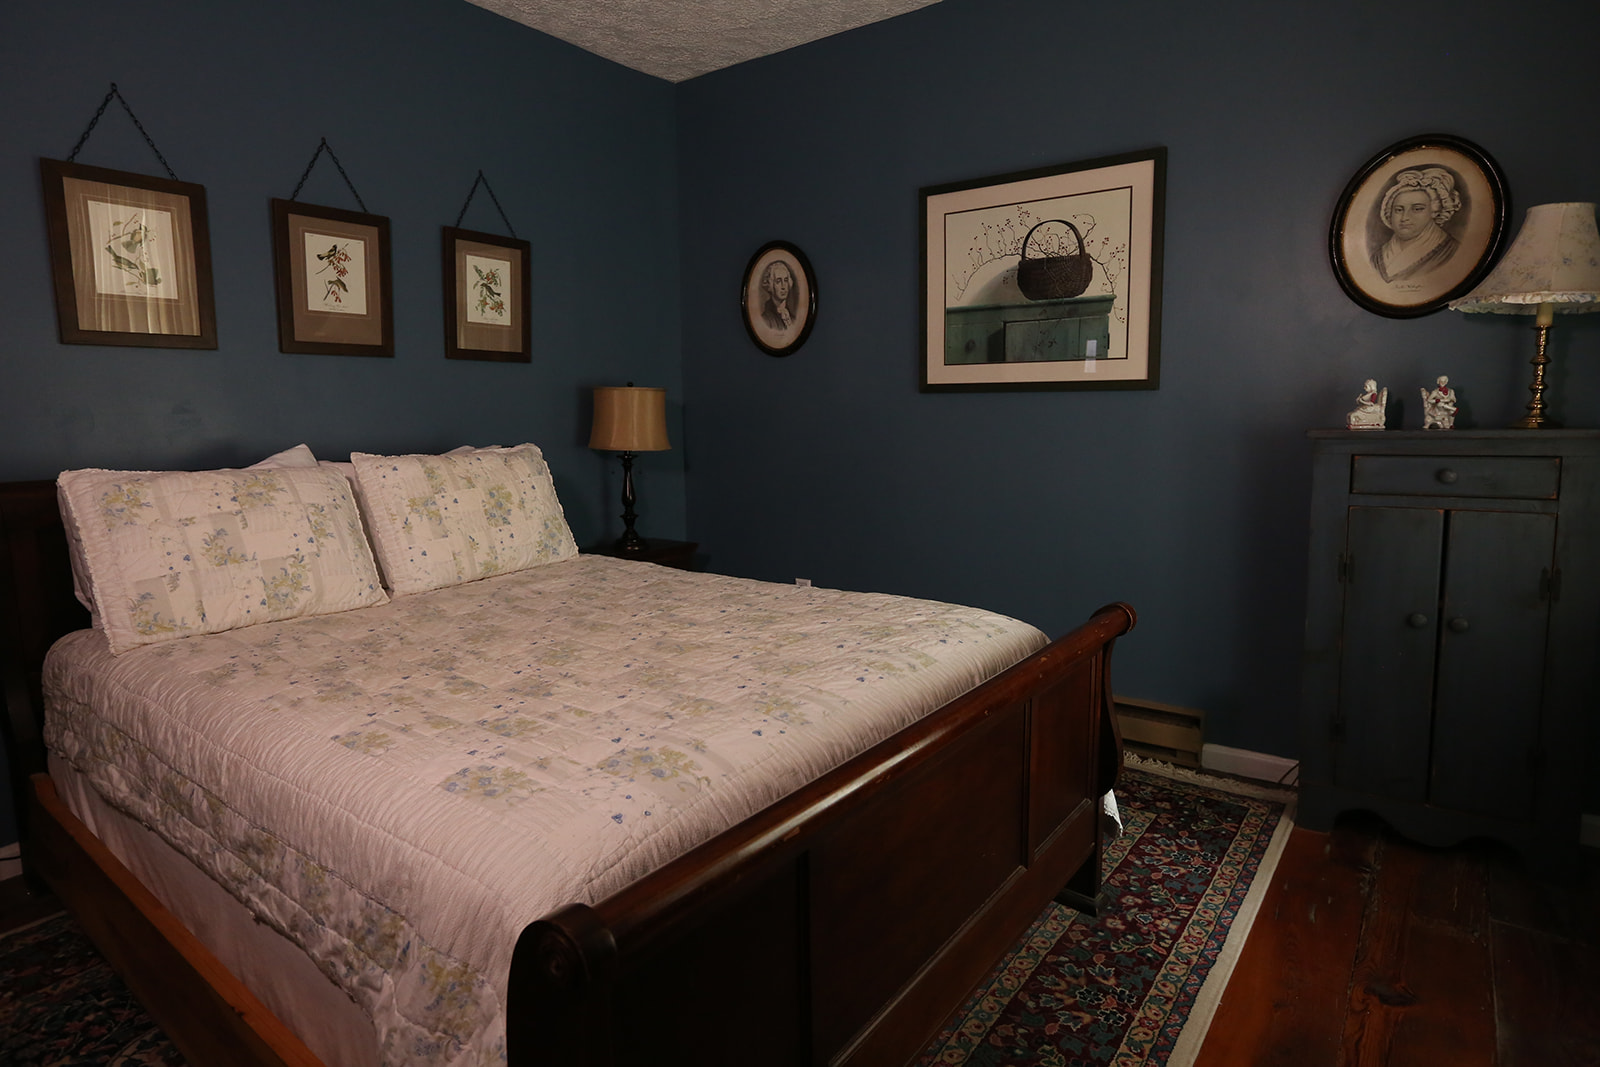 the Washington Suite room with a bed, picture frames on the walls and a dresser